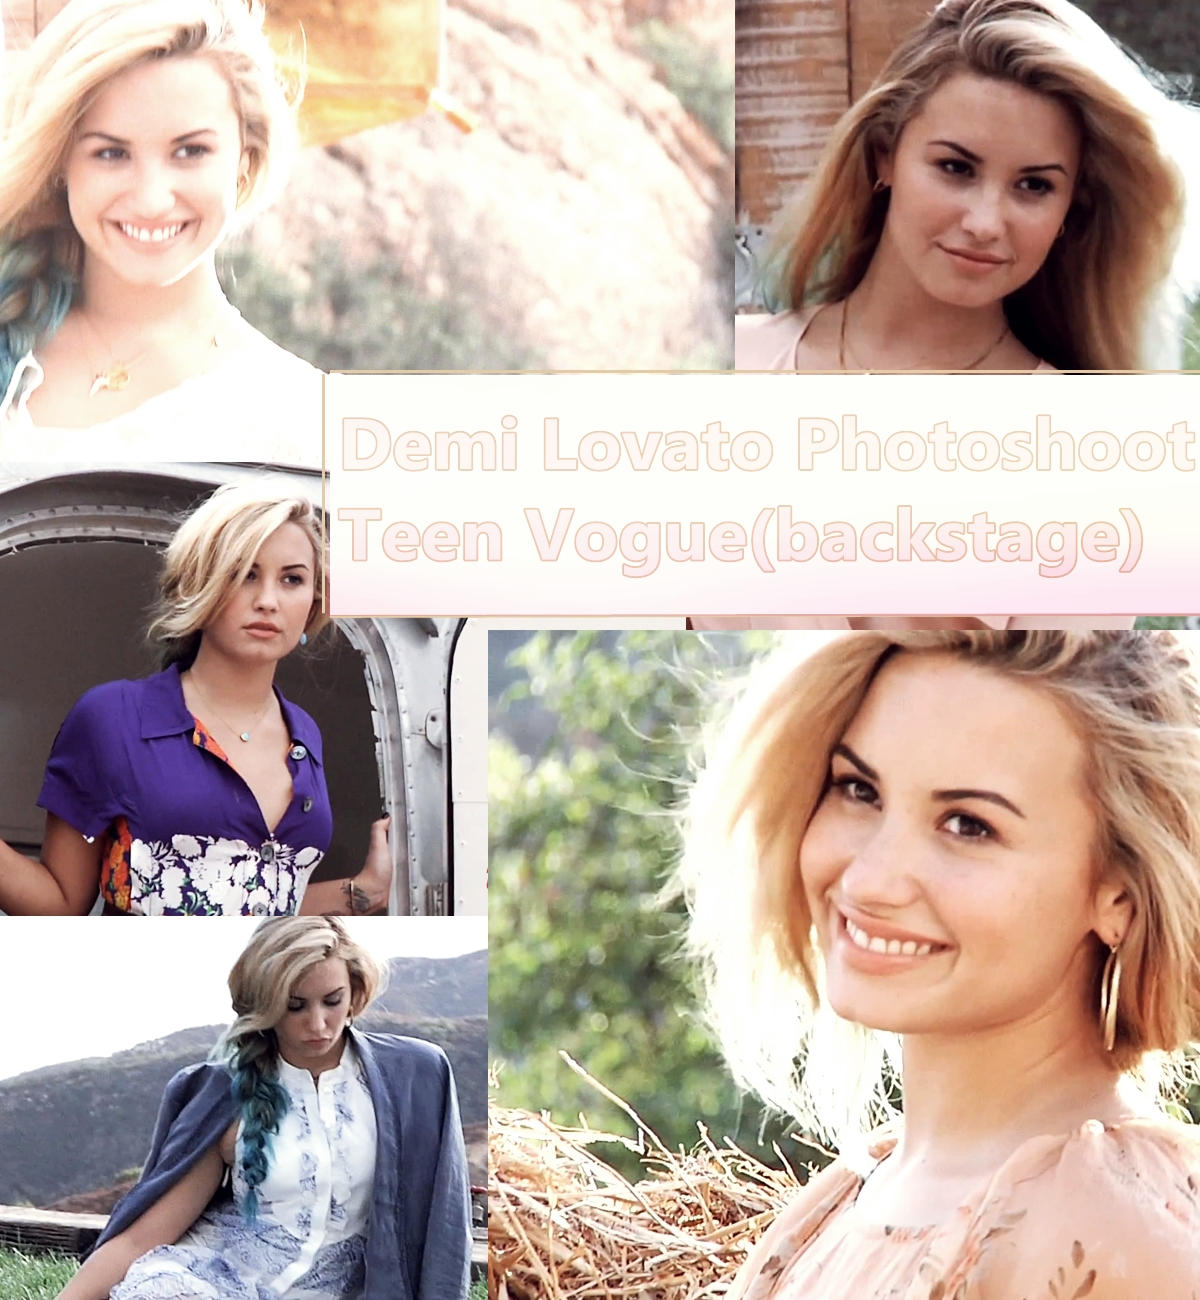 Demi Lovato Photoshoot  Teen Vogue backstage  by DeyryDemi Lovato Teen Vogue Photoshoot